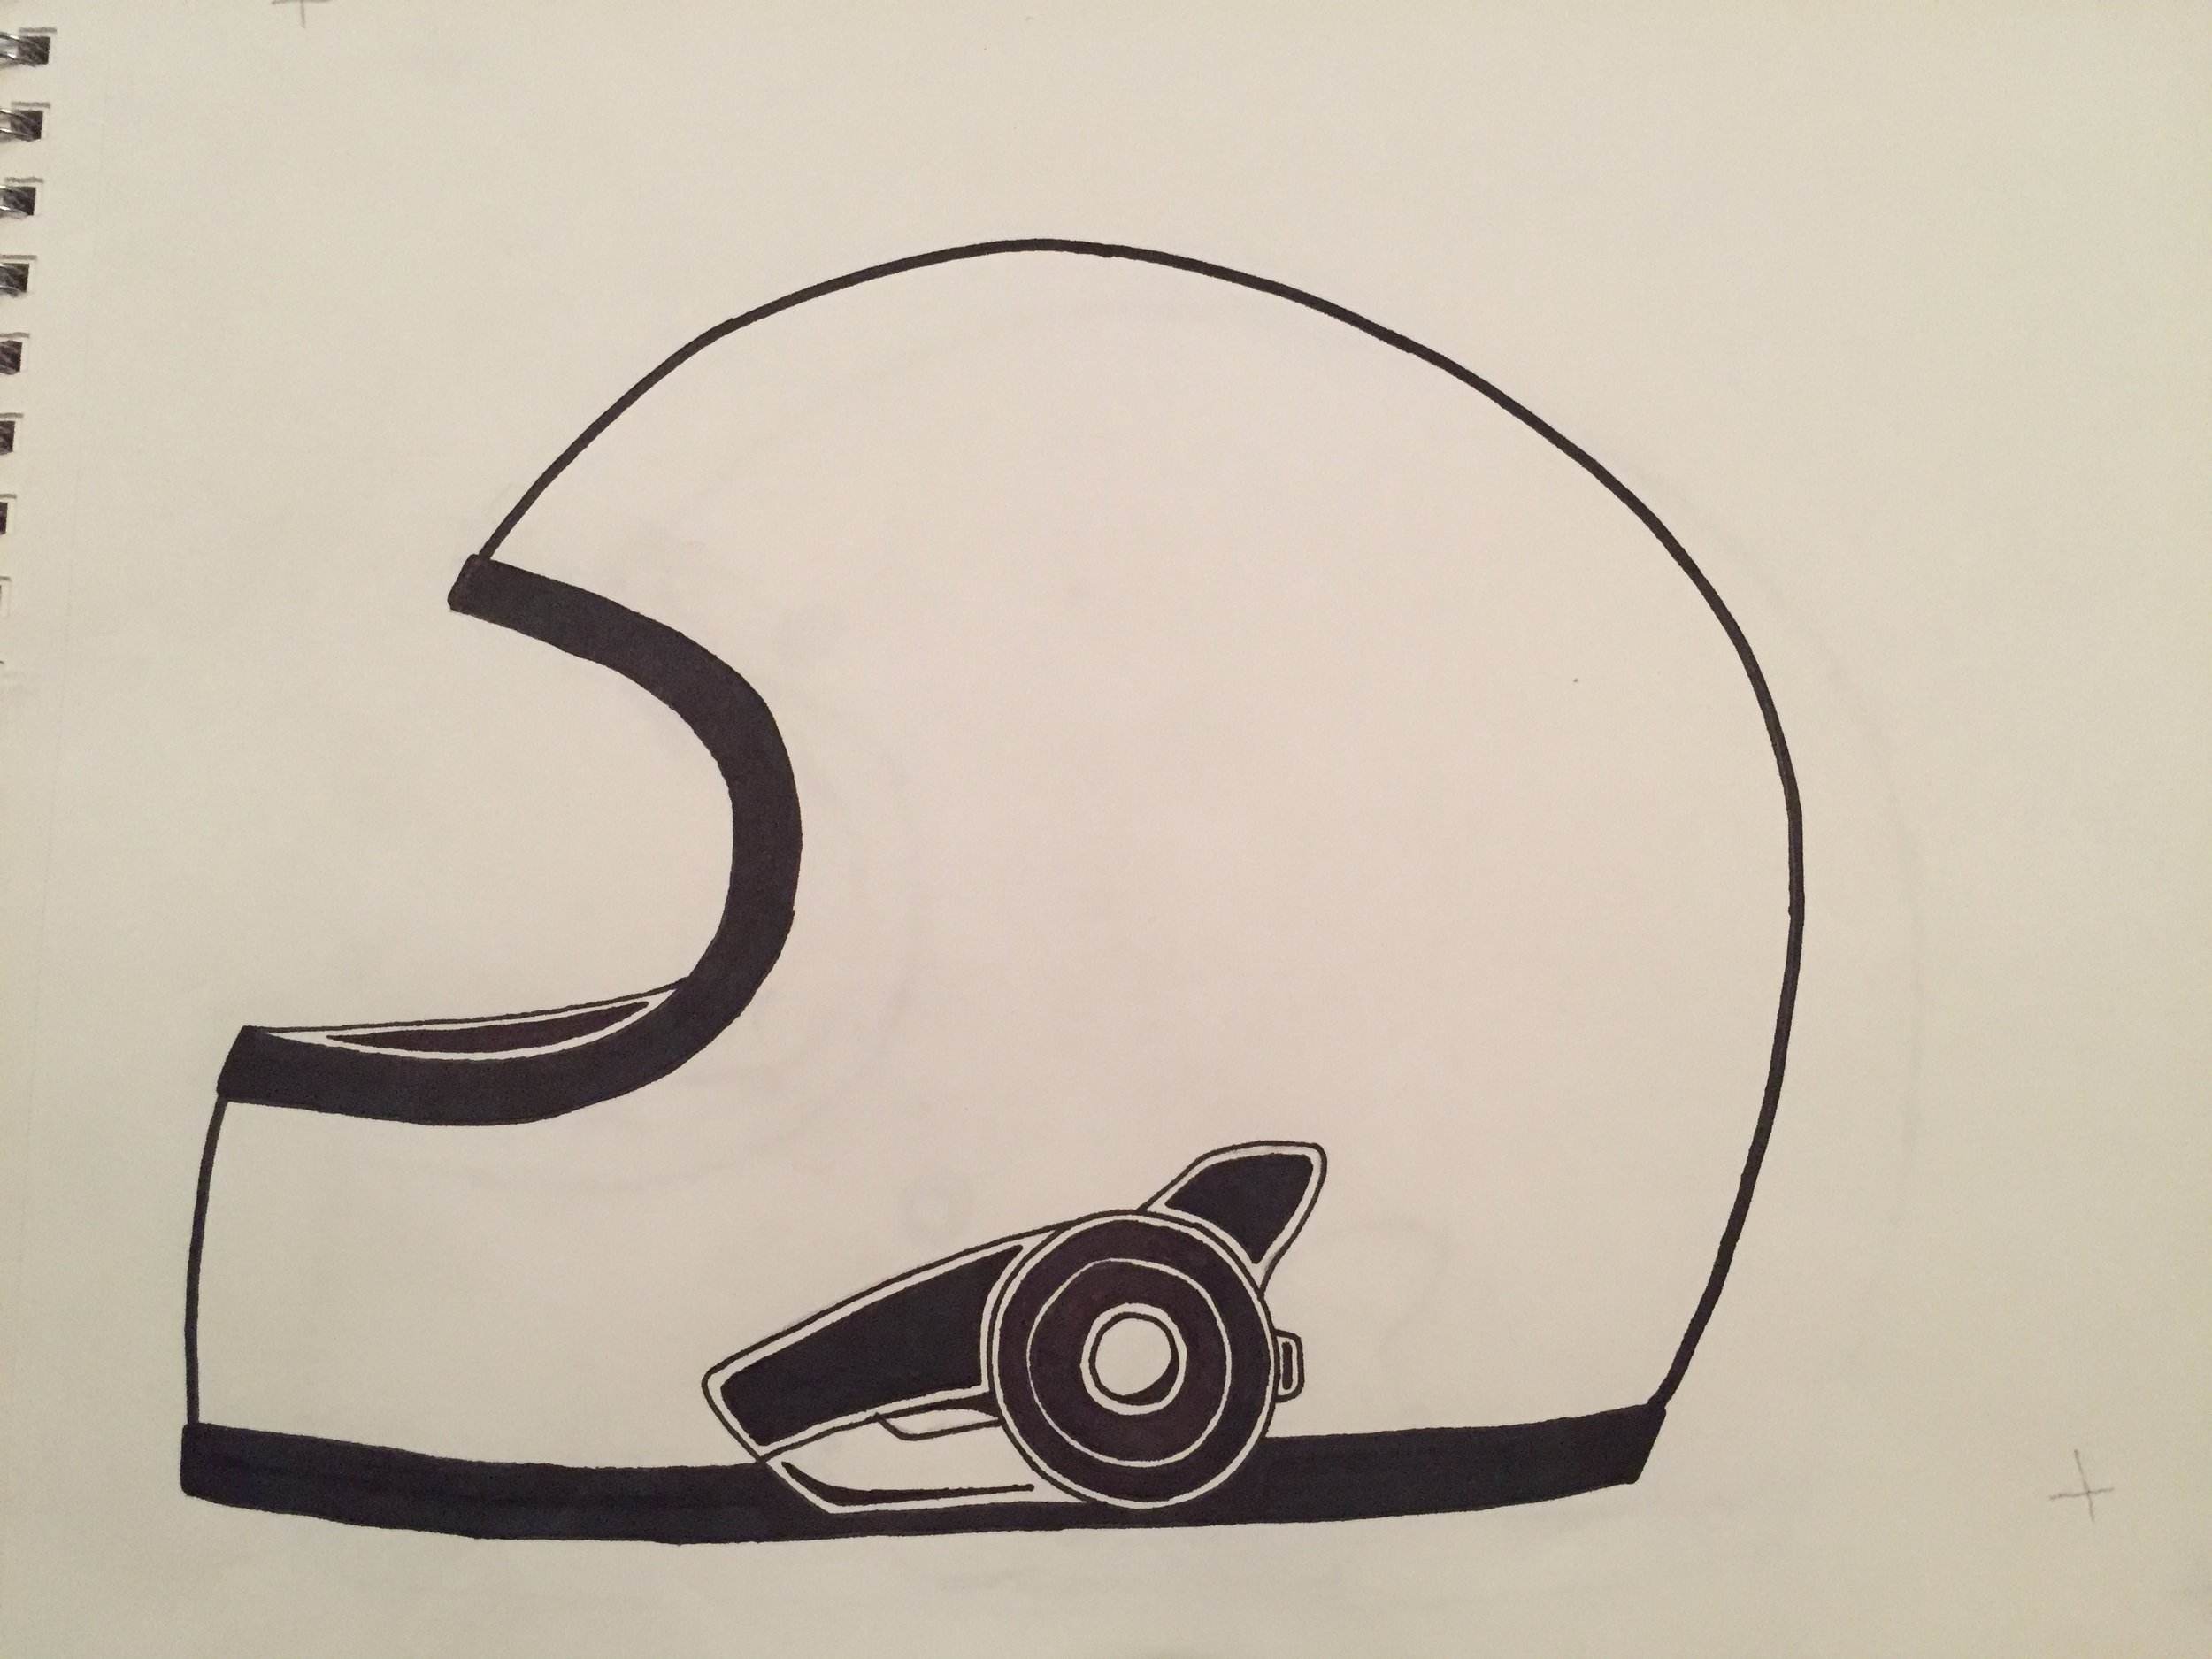 Sketch of helmet variant.